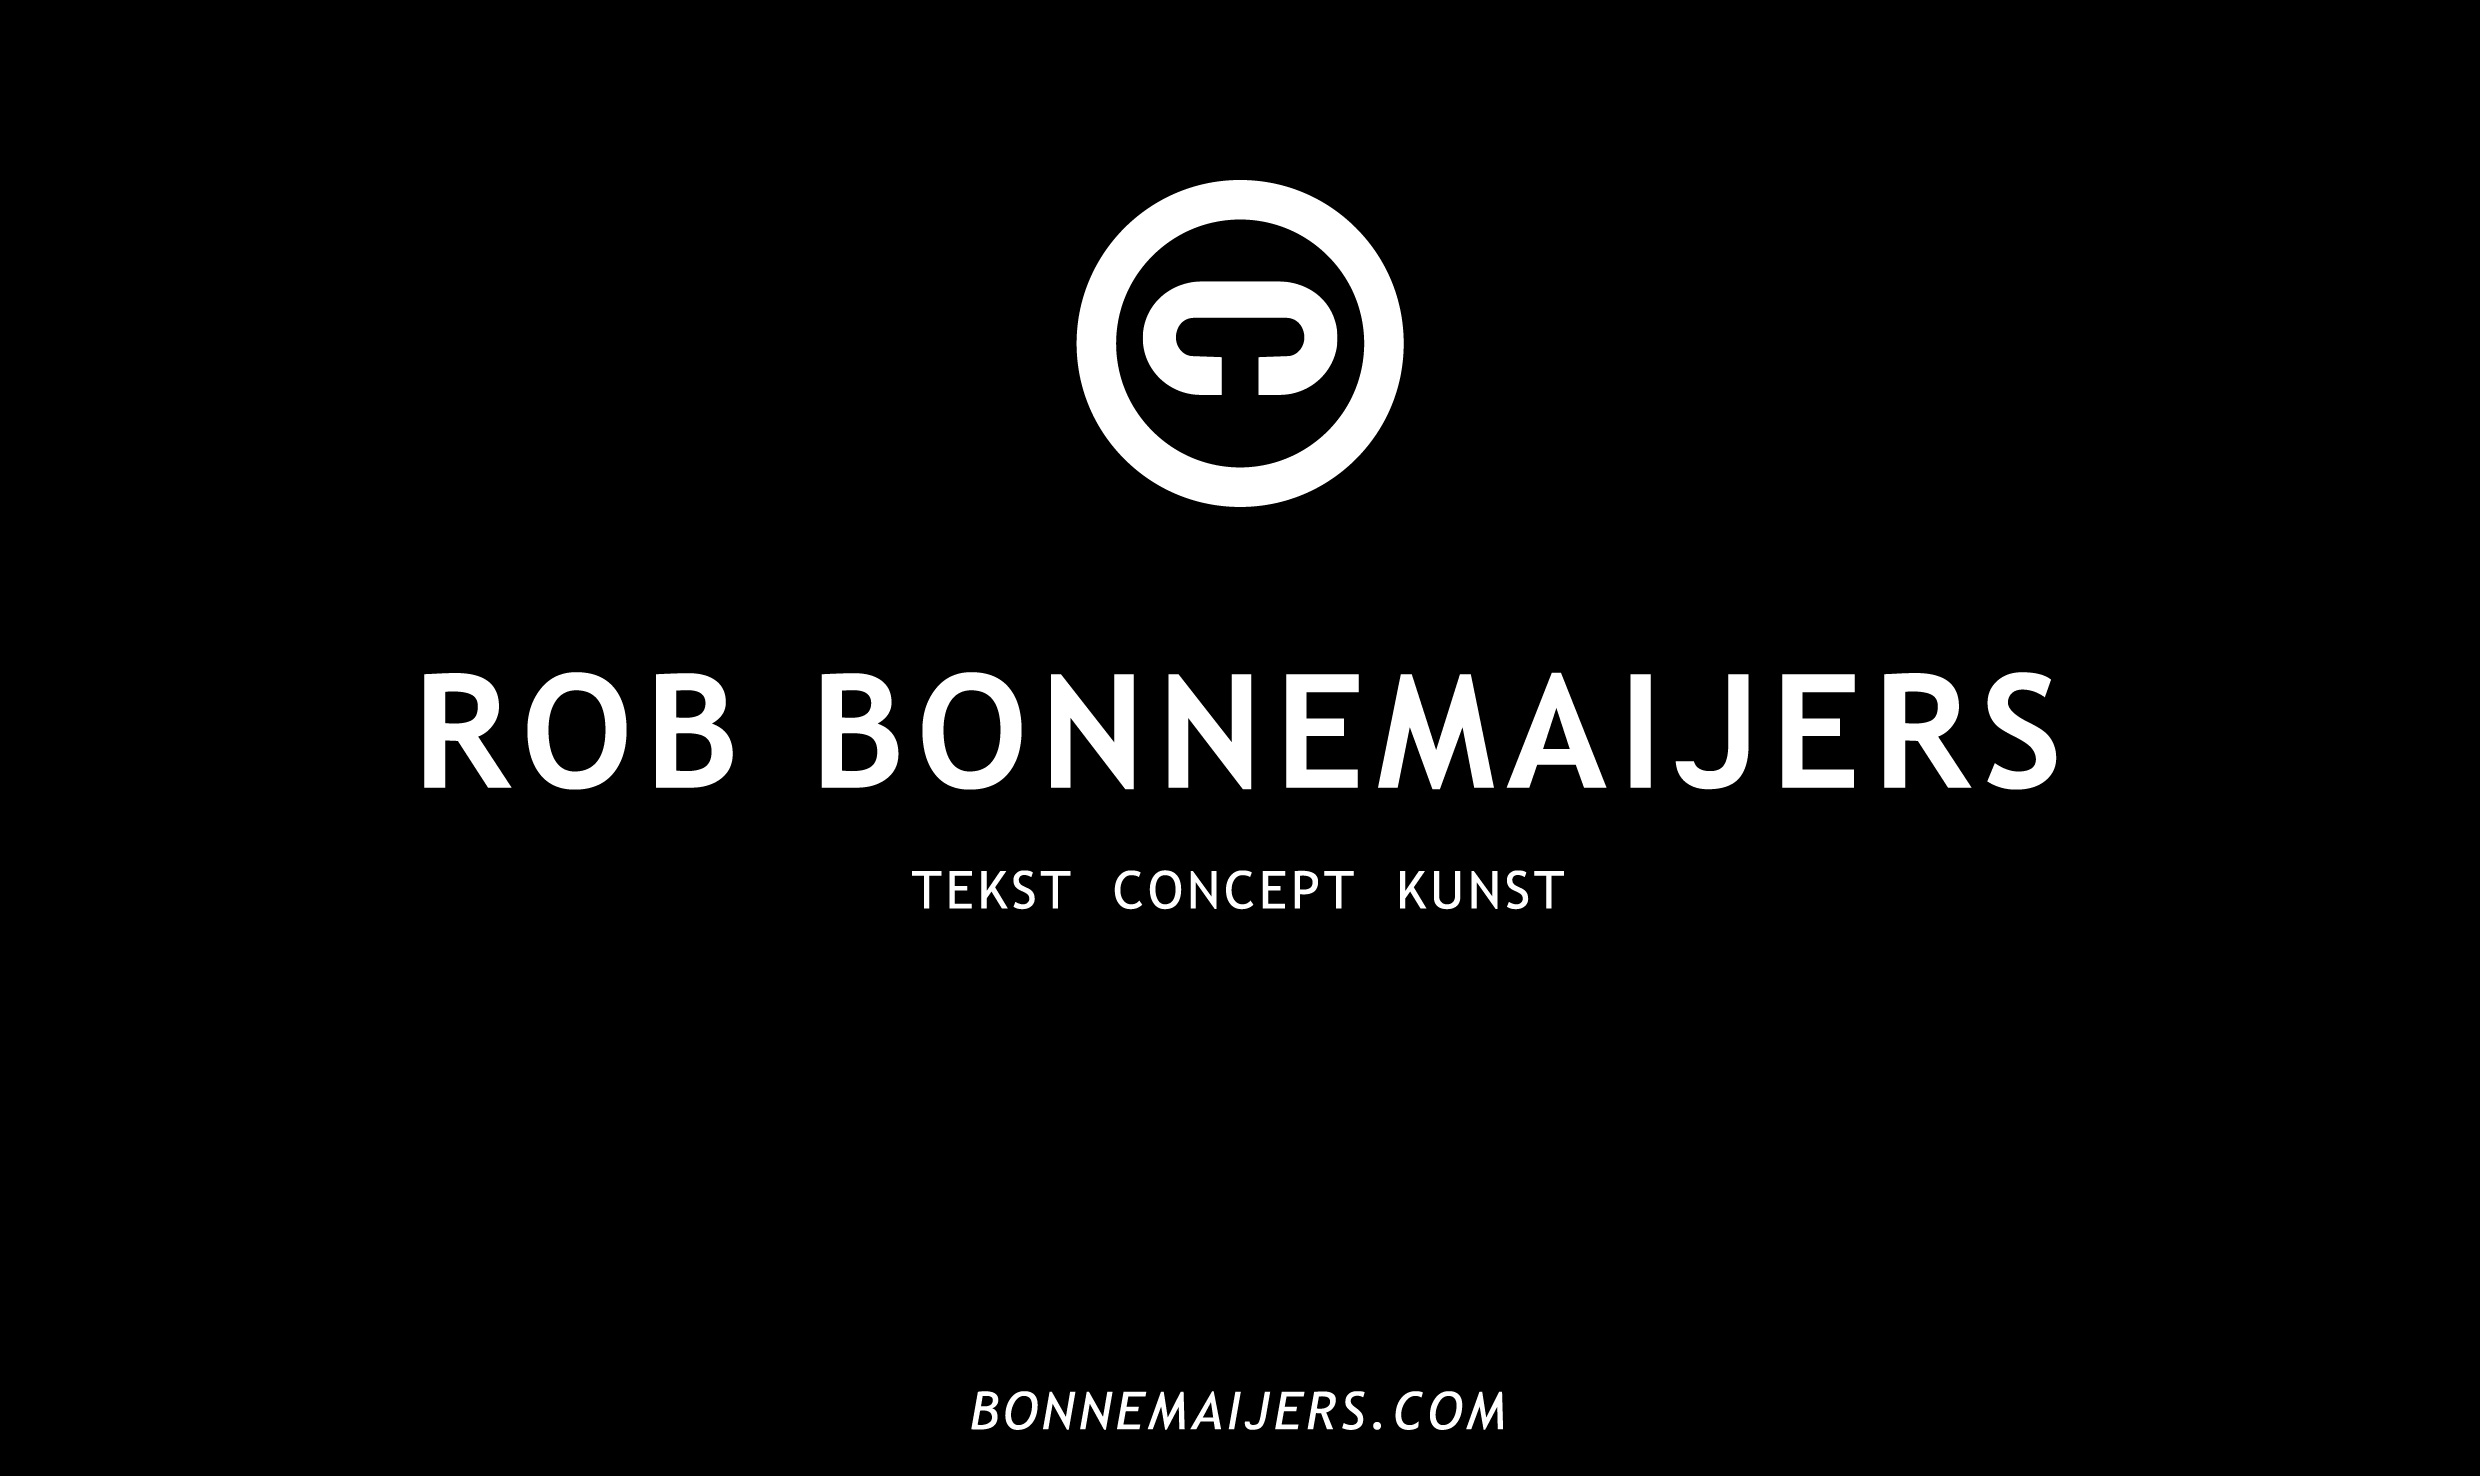 Bonnemaijers copy & concepts